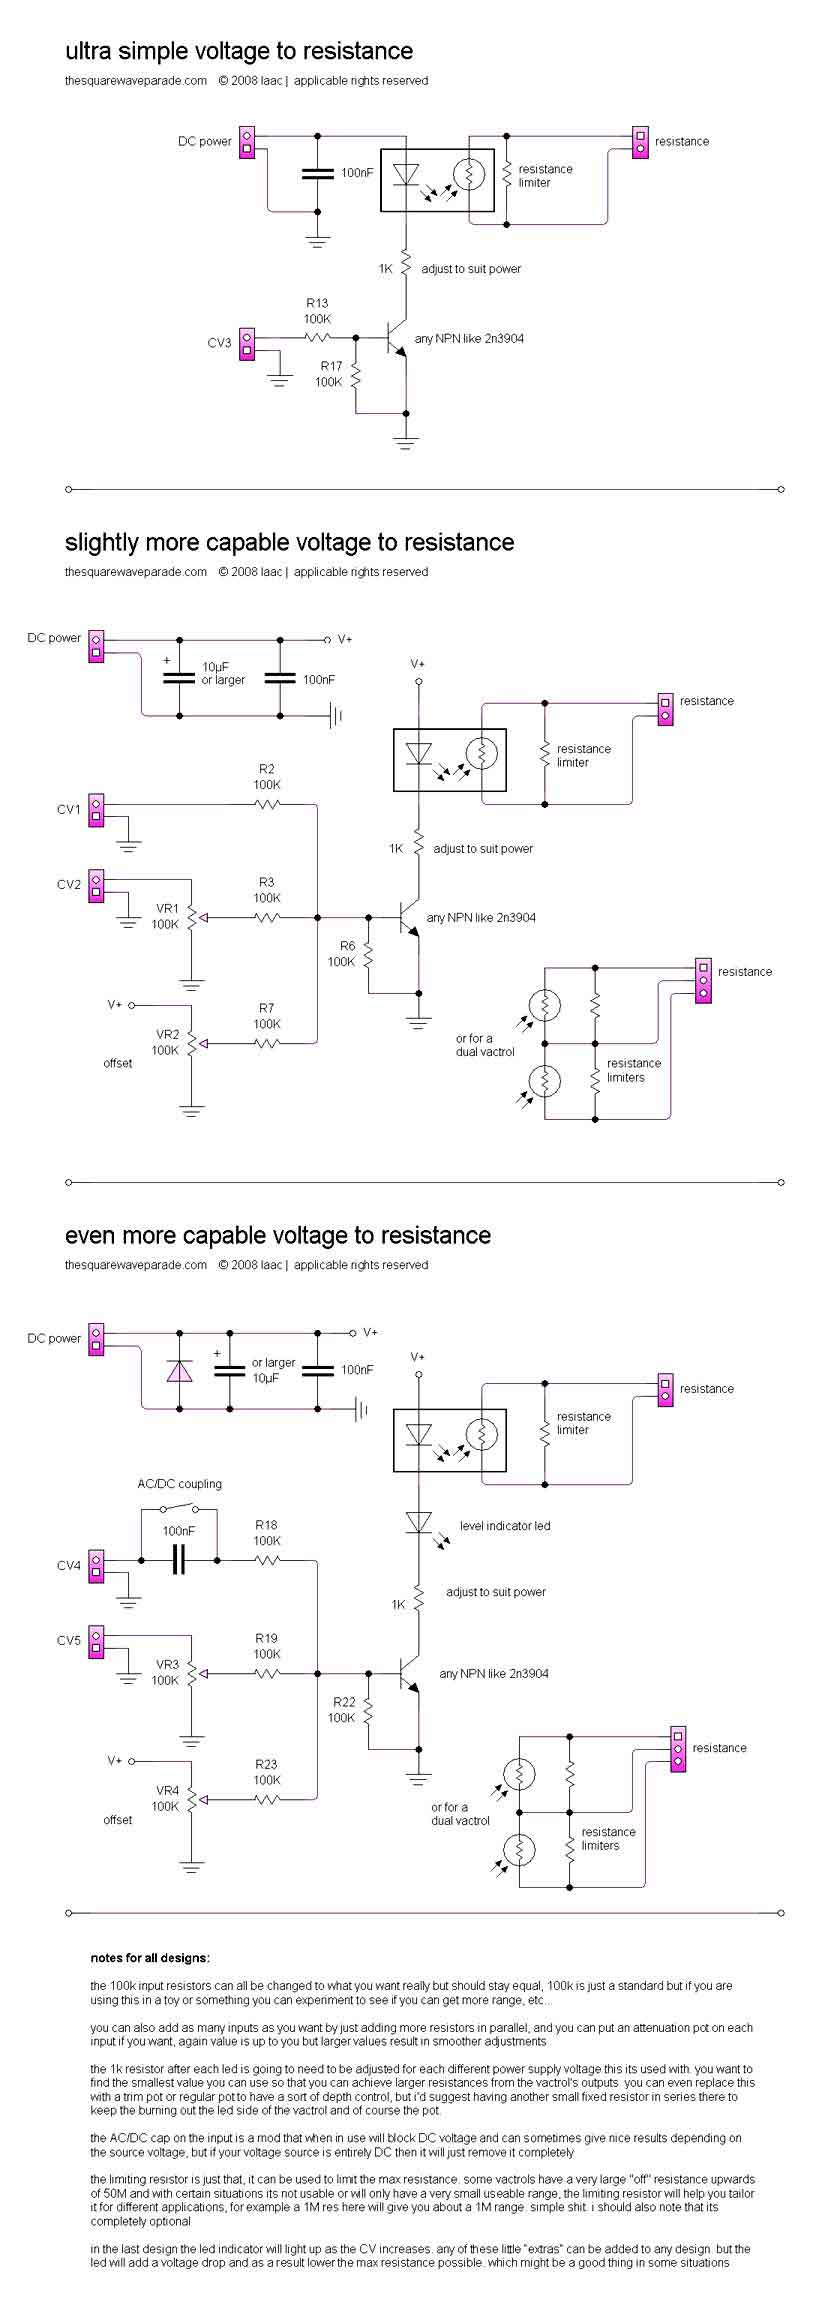 Full Text Of Synth Diy Mailing List Sine Wave Vfc To Use With Pll B2b Electronic Components